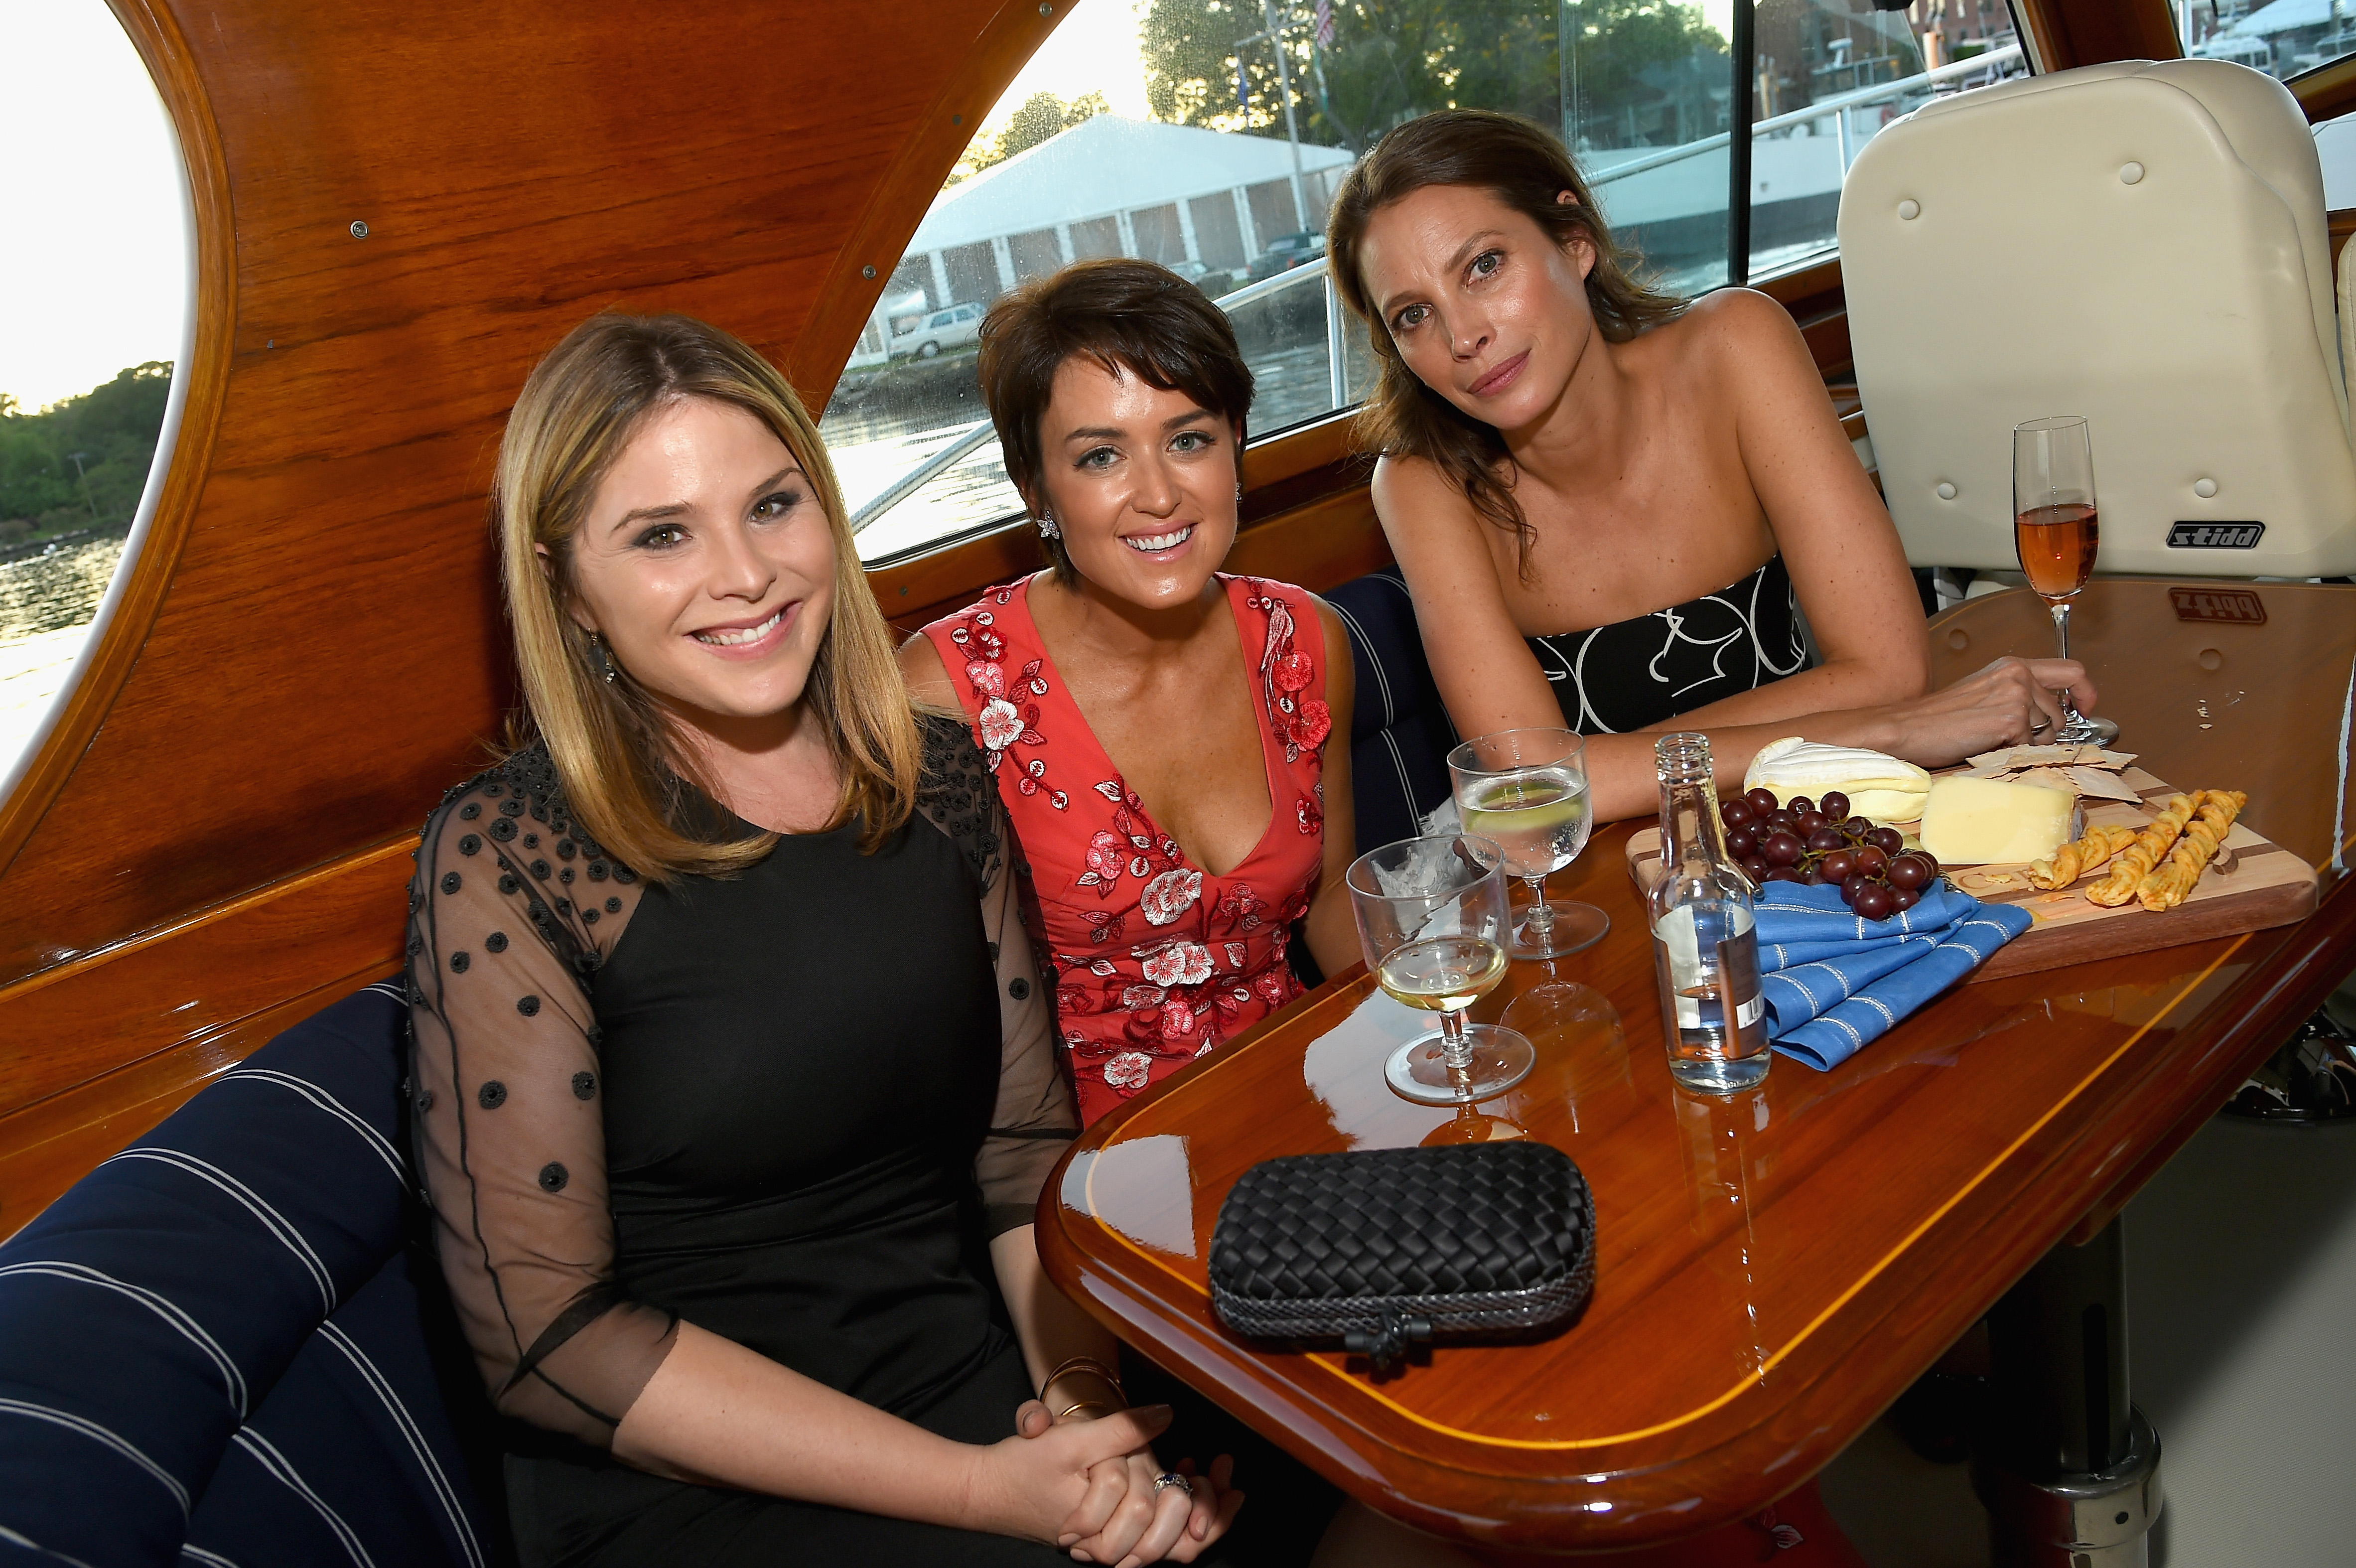 GREENWICH, CT - JUNE 01:  (L-R) Jenna Bush Hager, Wendy Reyes and Christy Turlington attend the Changemaker Boat Ride during the Greenwich International Film Festival, Day 1 on June 1, 2017 in Greenwich, Connecticut.  (Photo by Ben Gabbe/Getty Images for Greenwich International Film Festival)